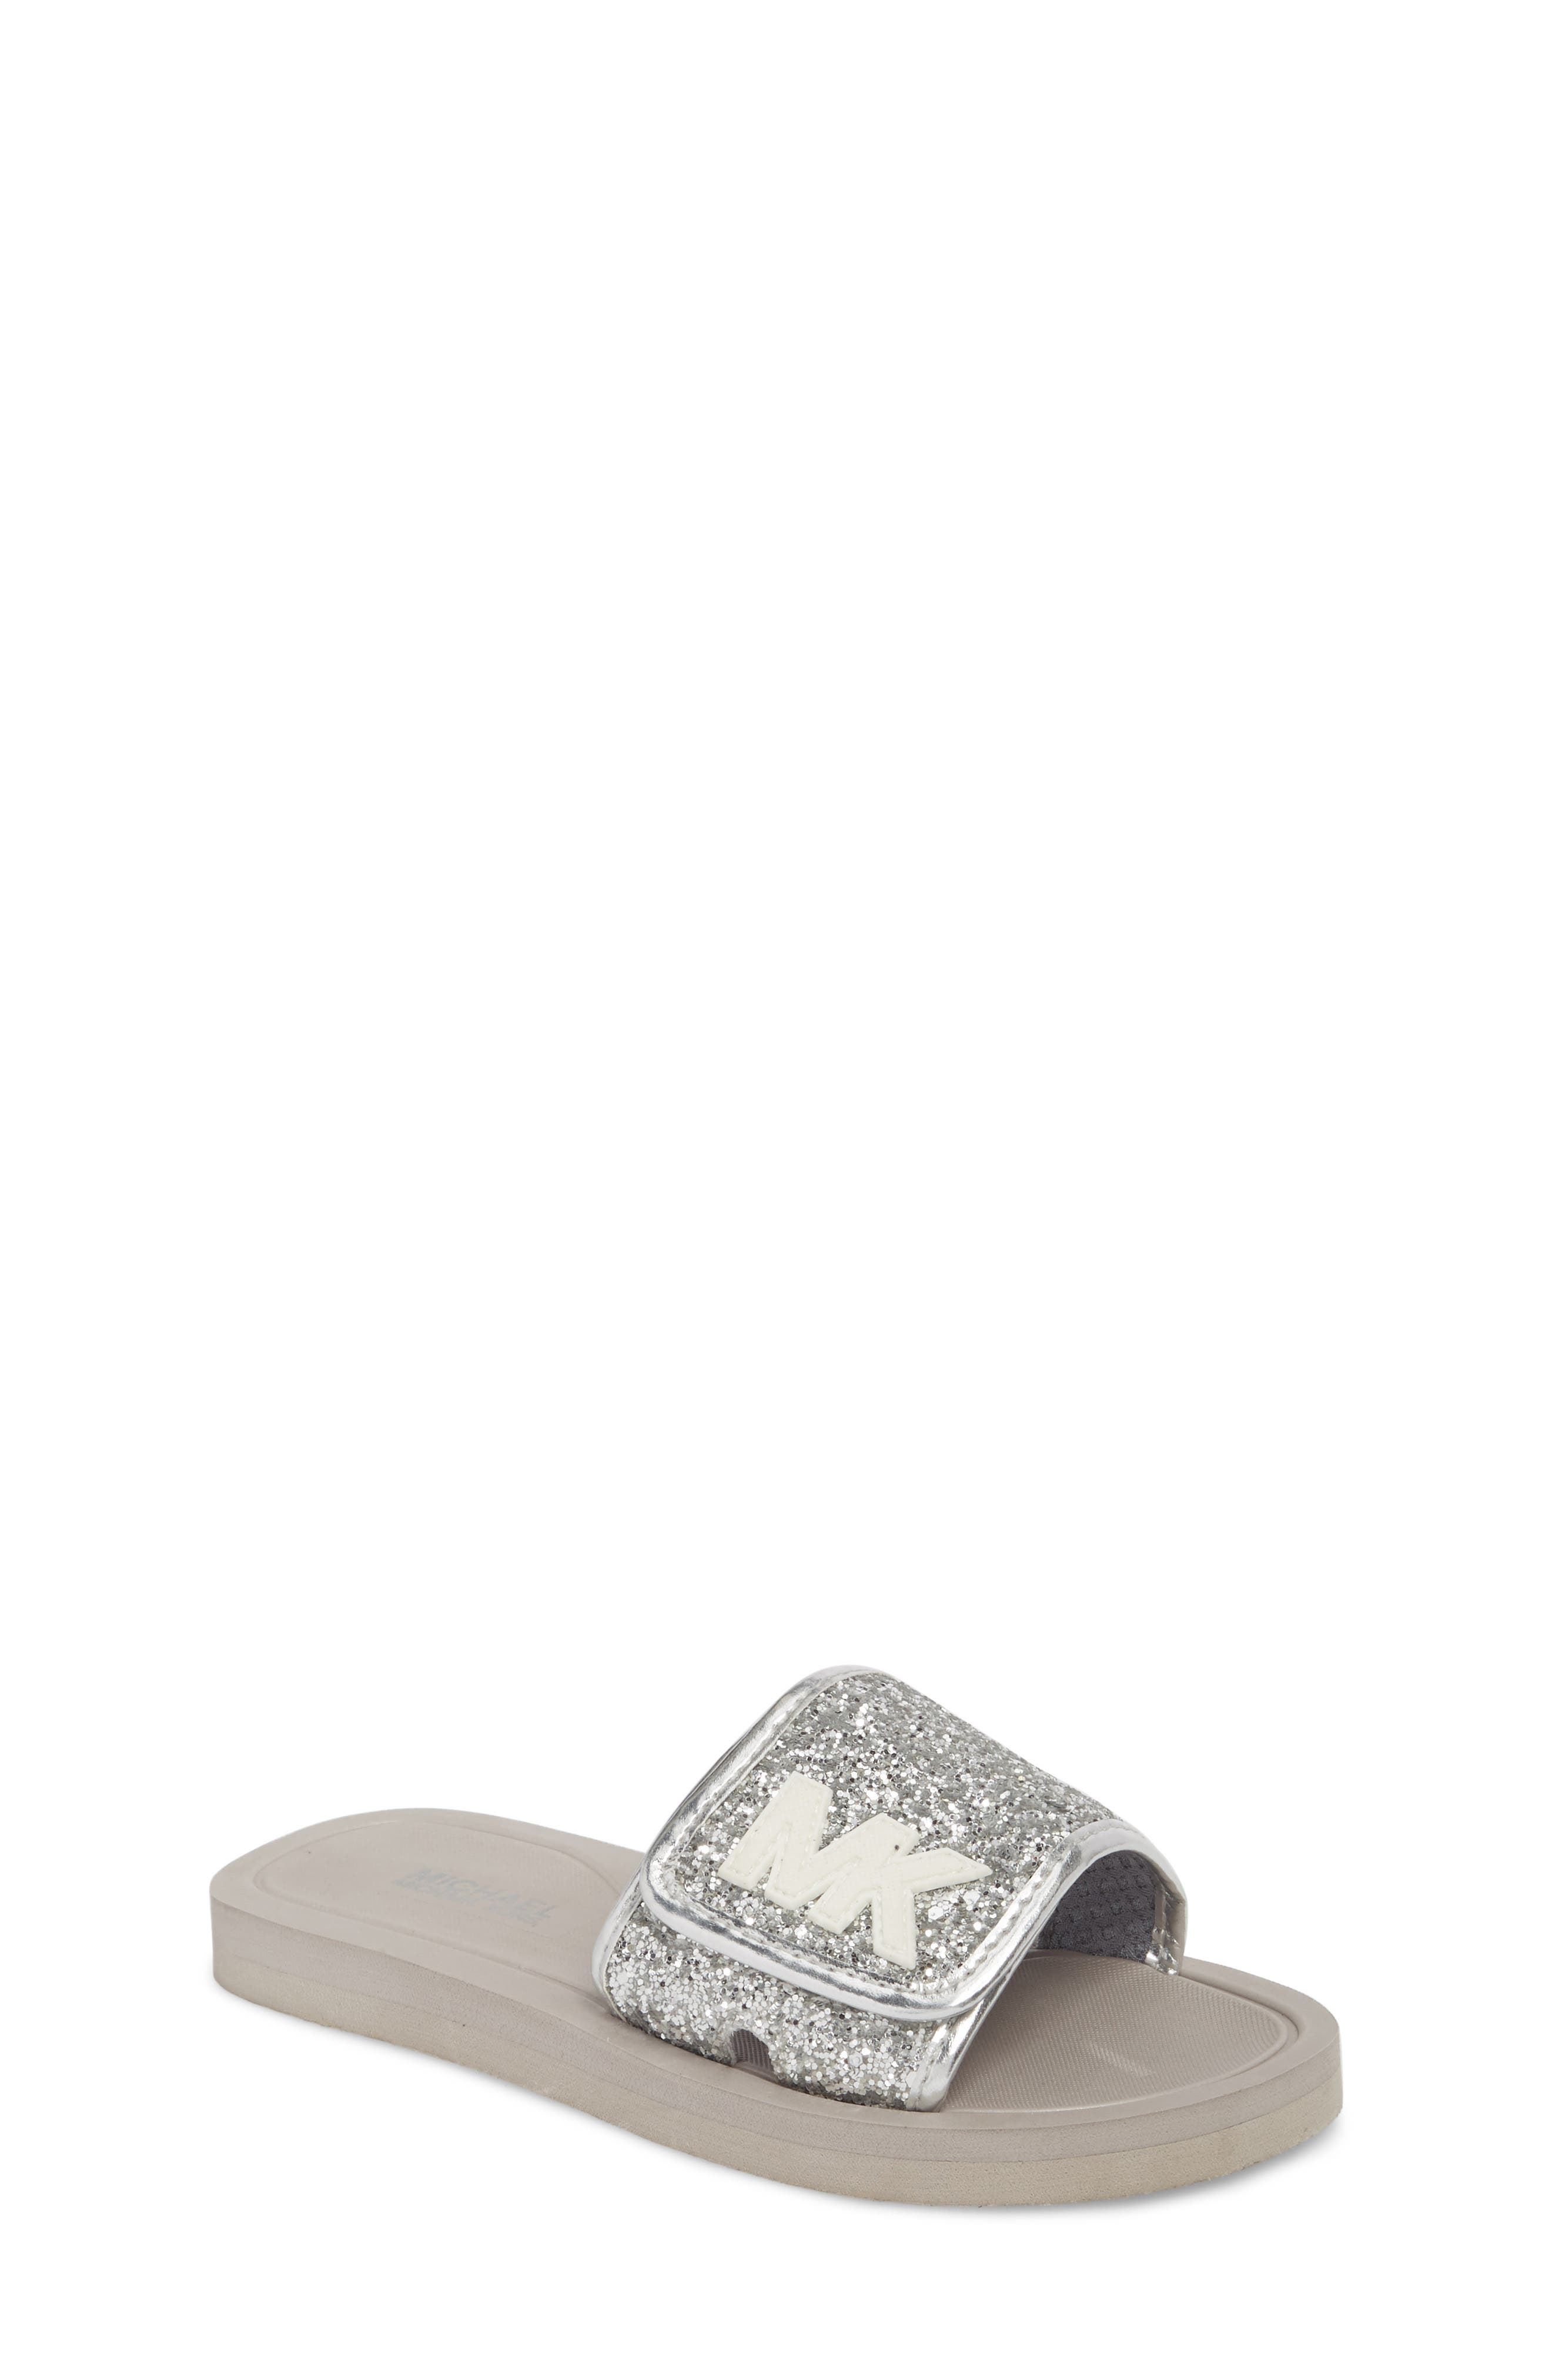 MICHAEL Michael Kors Eli Glow Glitter Slide Sandal (Toddler, Little Kid & Big Kid)